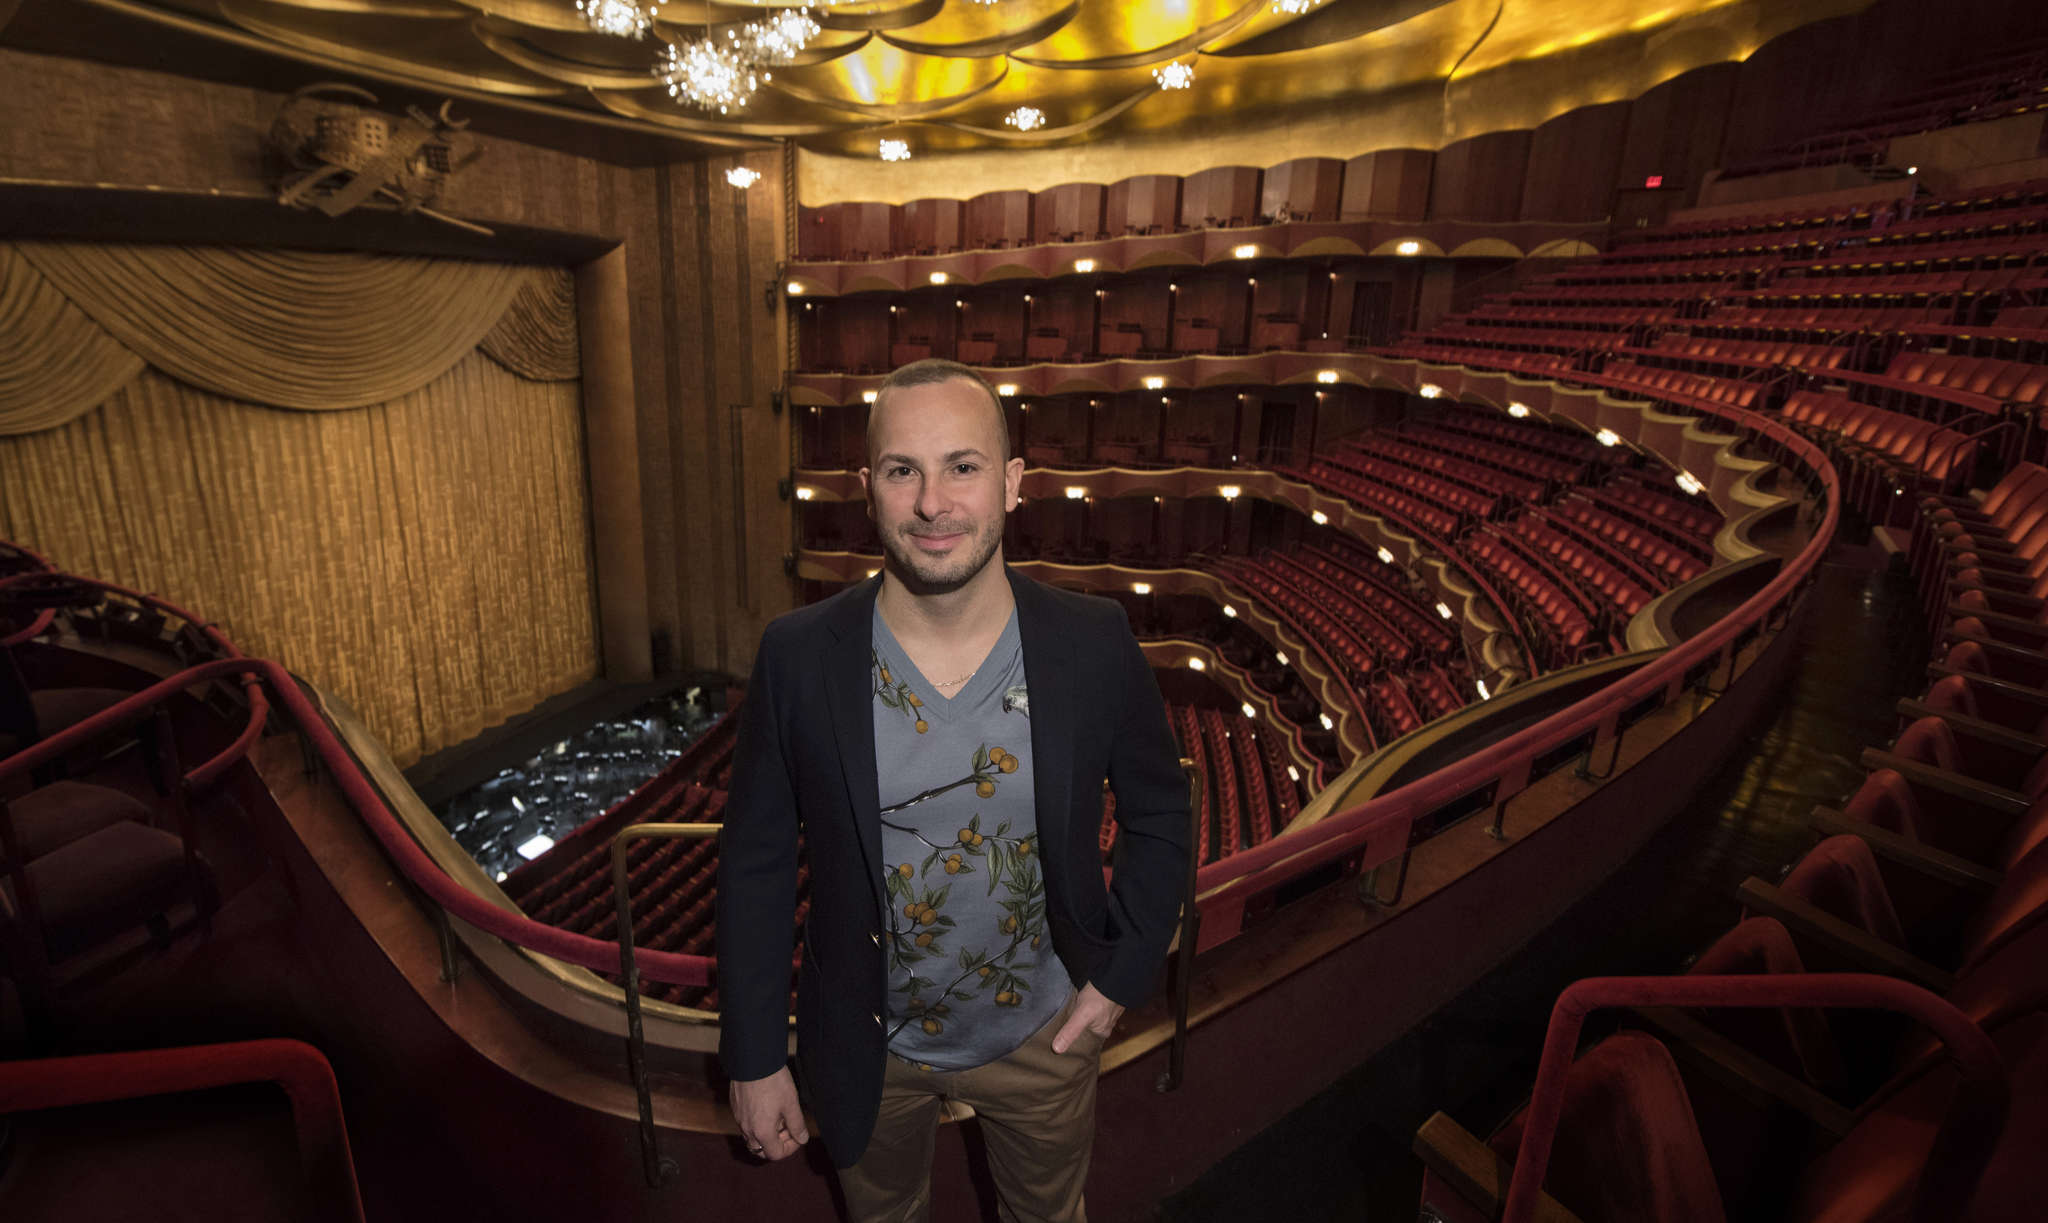 Yannick Nézet-Séguin has been named music director at the Metropolitan Opera after much speculation, succeeding James Levine.